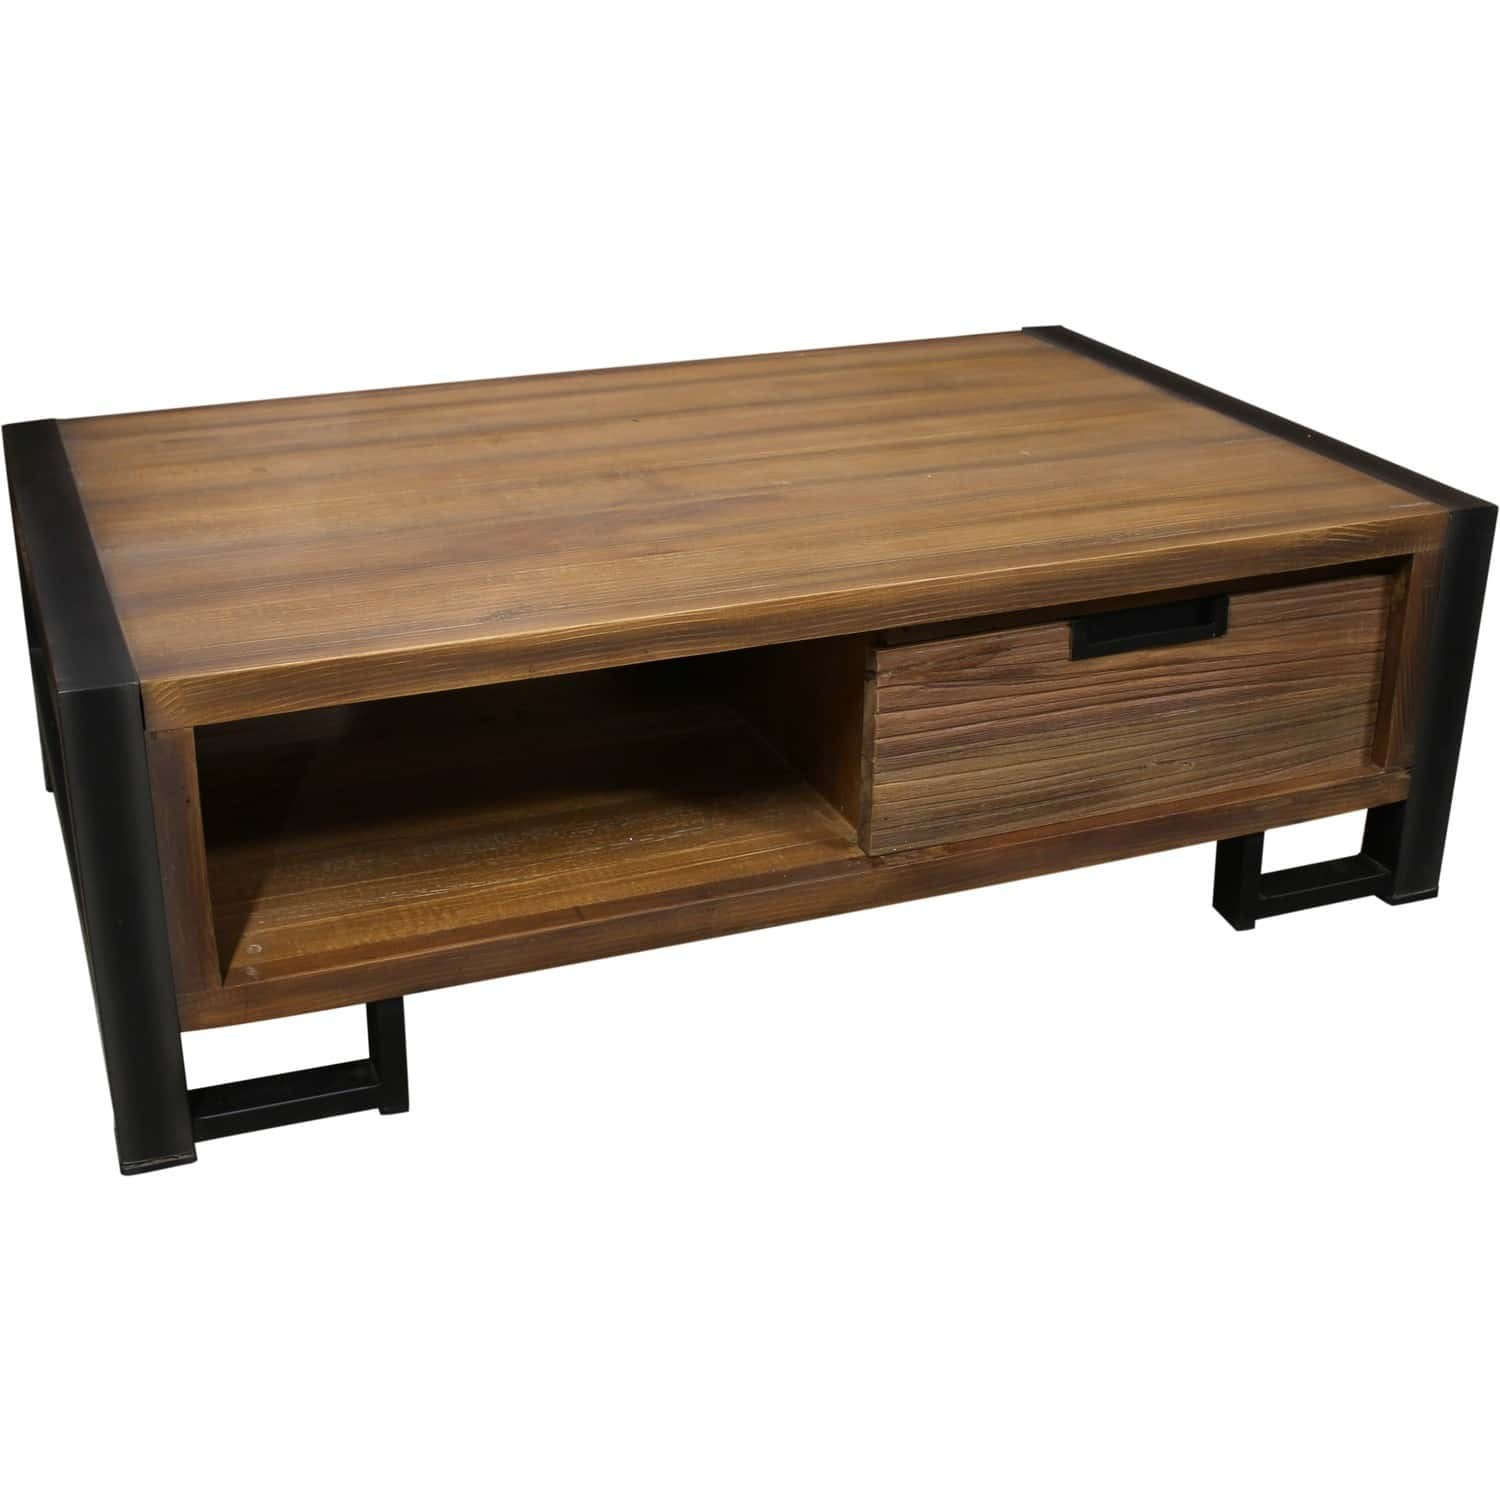 Table basse amazone - Table basse carree bois metal ...